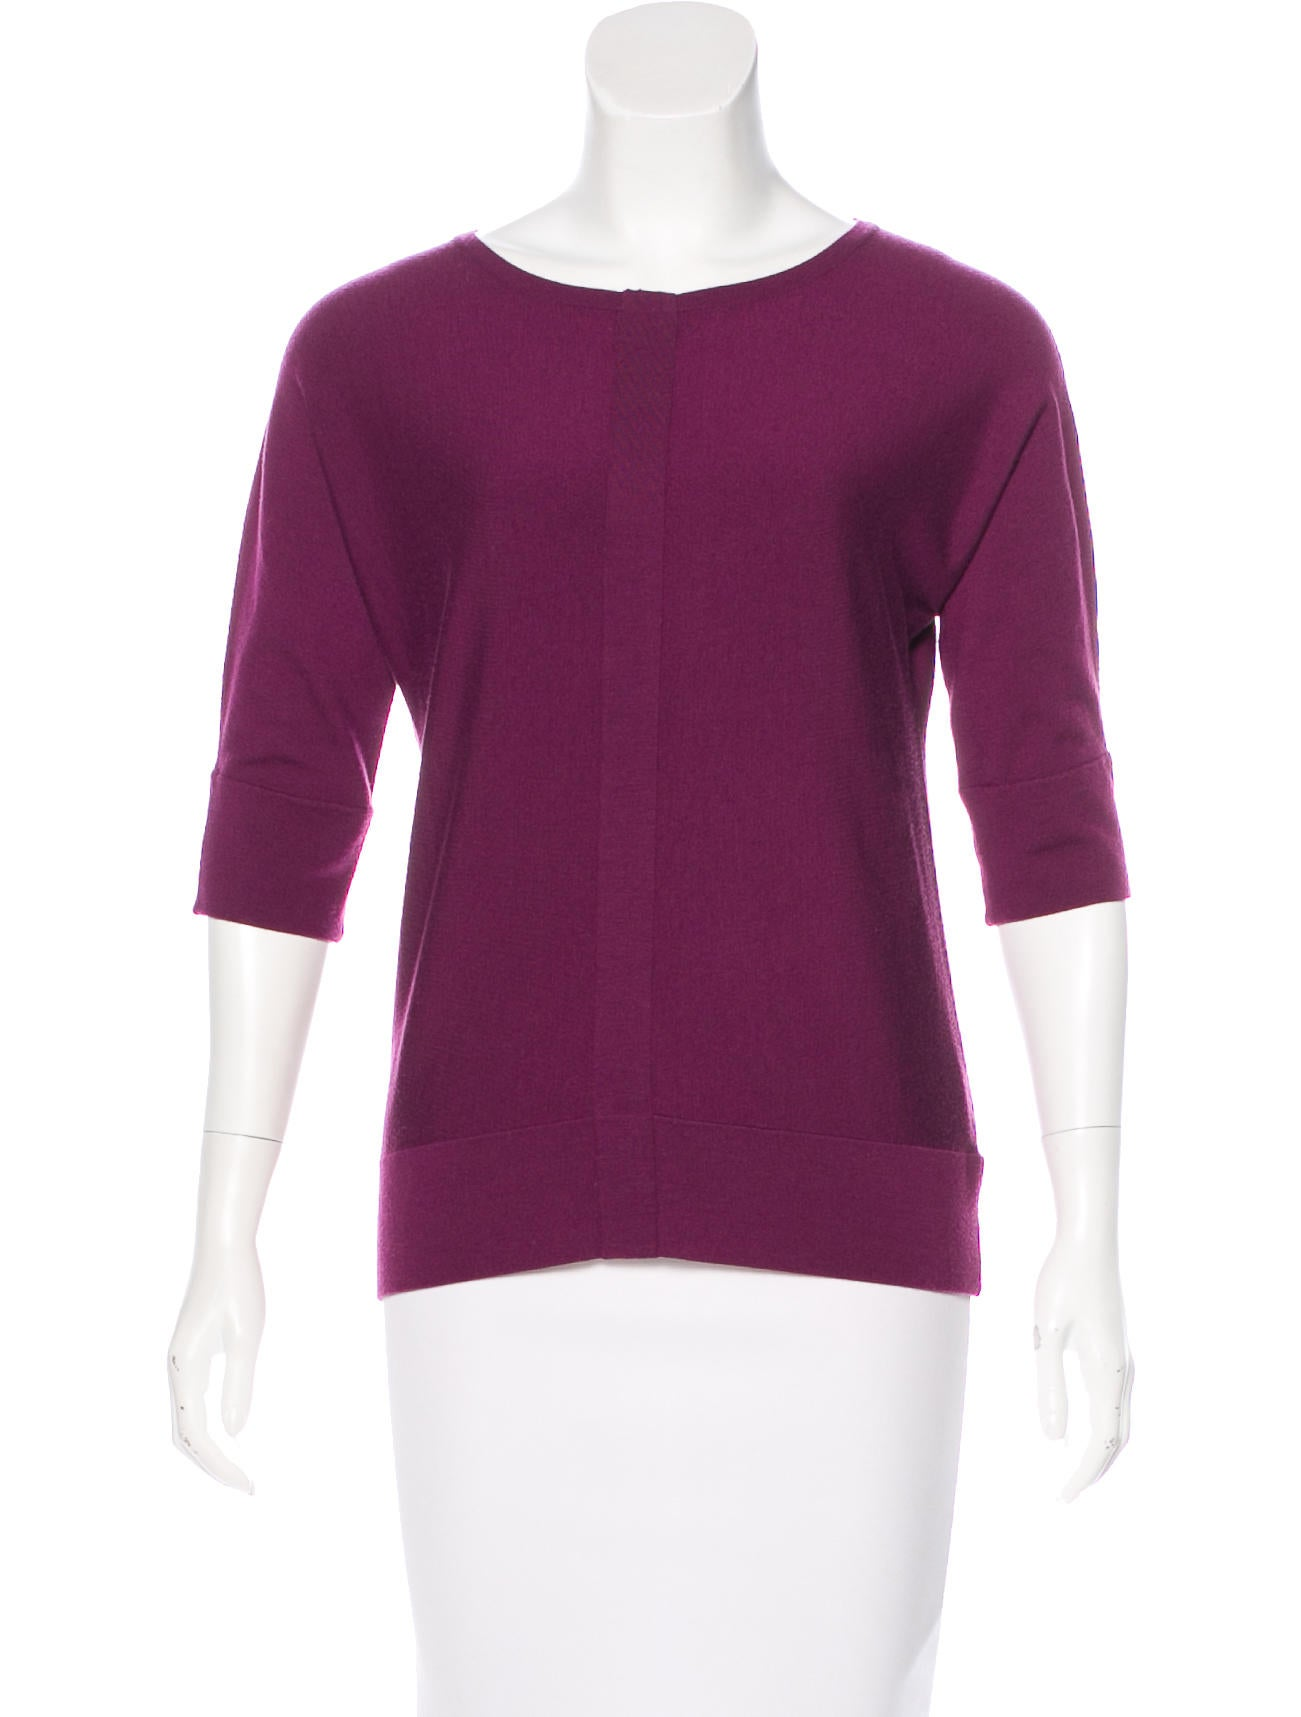 Akris punto wool knit top clothing wak33182 the realreal for Best wool shirt jackets